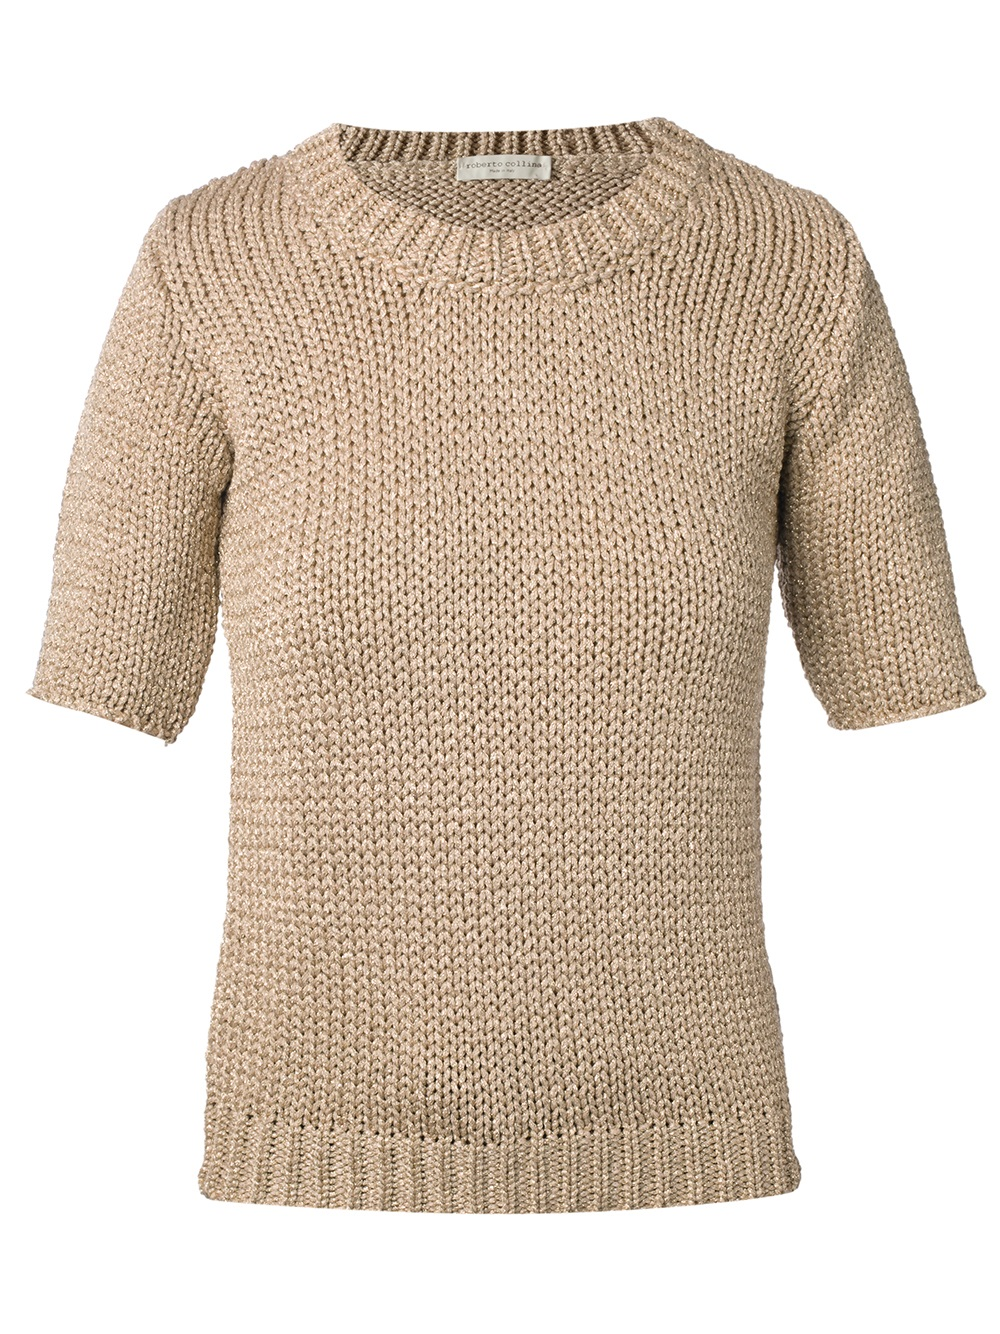 Roberto collina Short Sleeve Sweater in Natural | Lyst